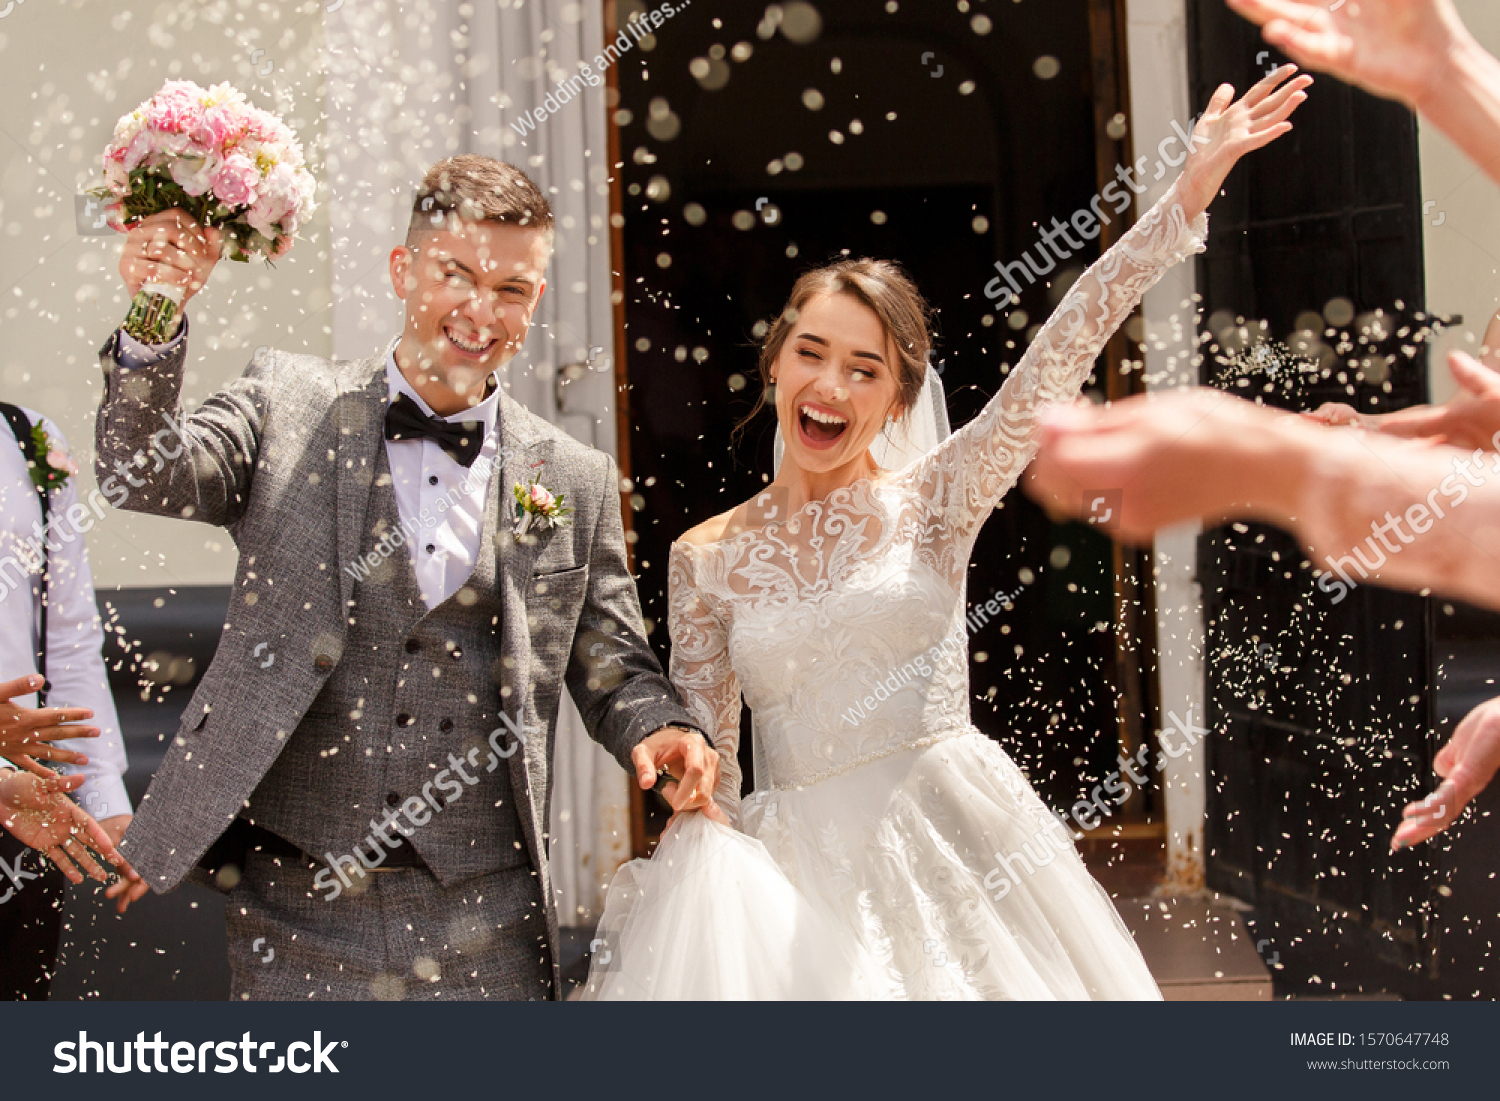 Happy wedding photography of bride and groom at wedding ceremony. Wedding tradition sprinkled with rice and grain #1570647748